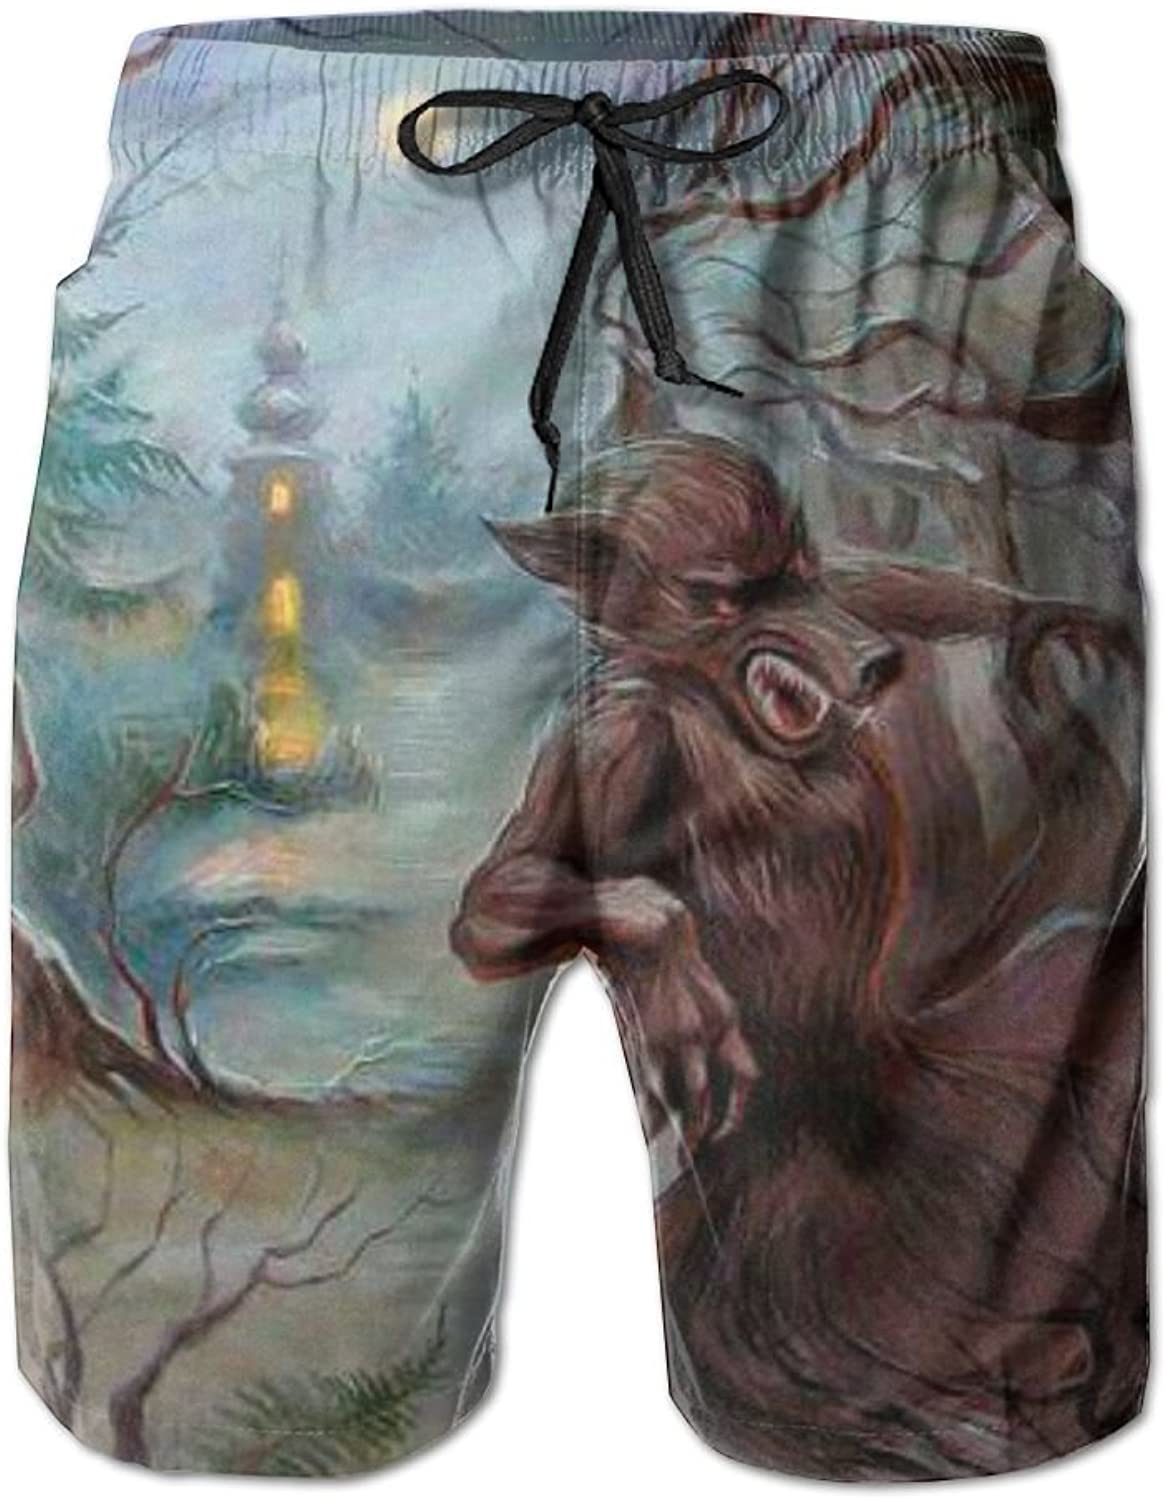 321d59702929b Tydo Quick Dry Beach Shorts Fantasy Wolf Painting Swim Swim Swim Trunks Surf  Board Pants With Pockets For Men 996d2c